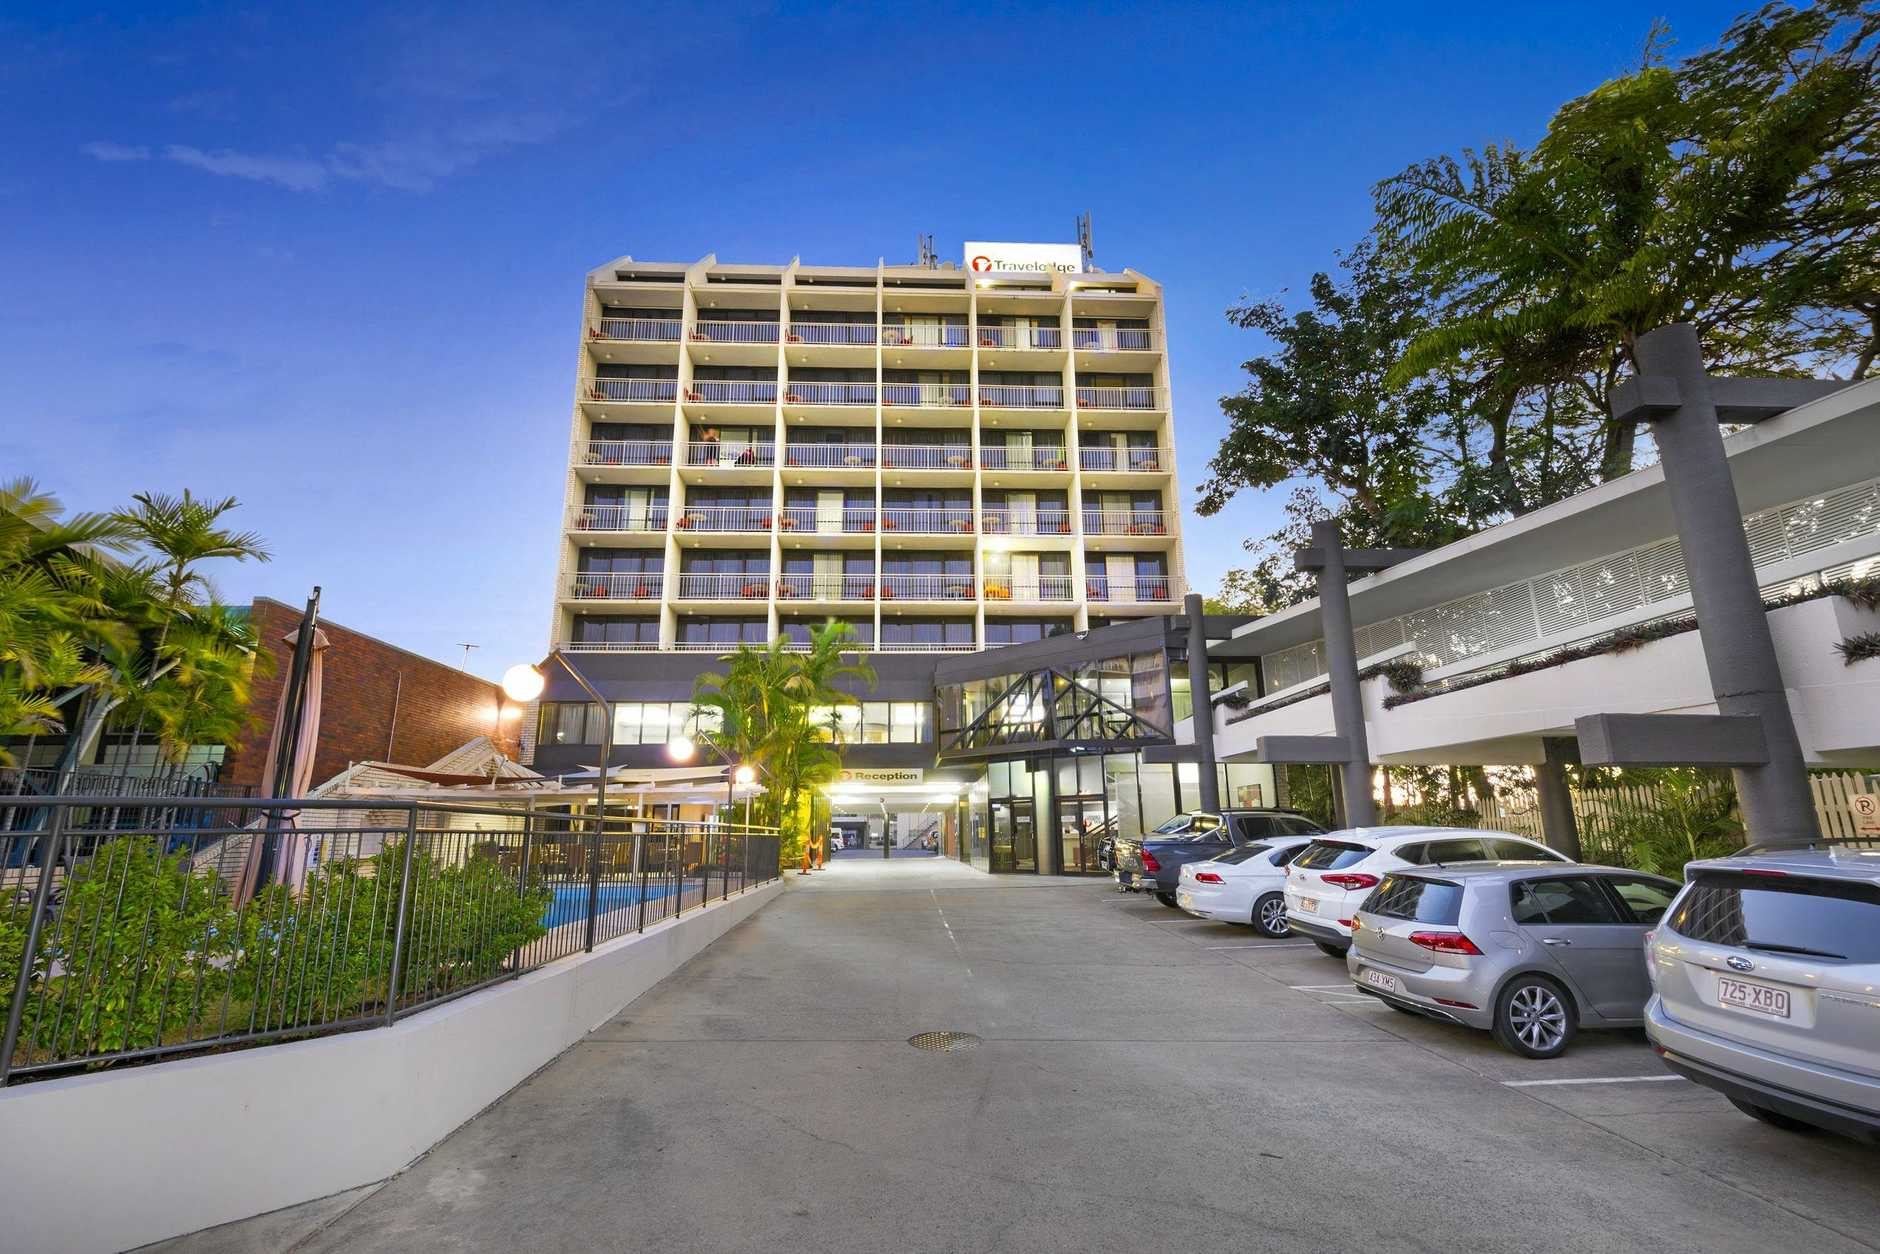 Travelodge Hotel, on Rockhampton's riverfront in Victoria Parade has been sold.